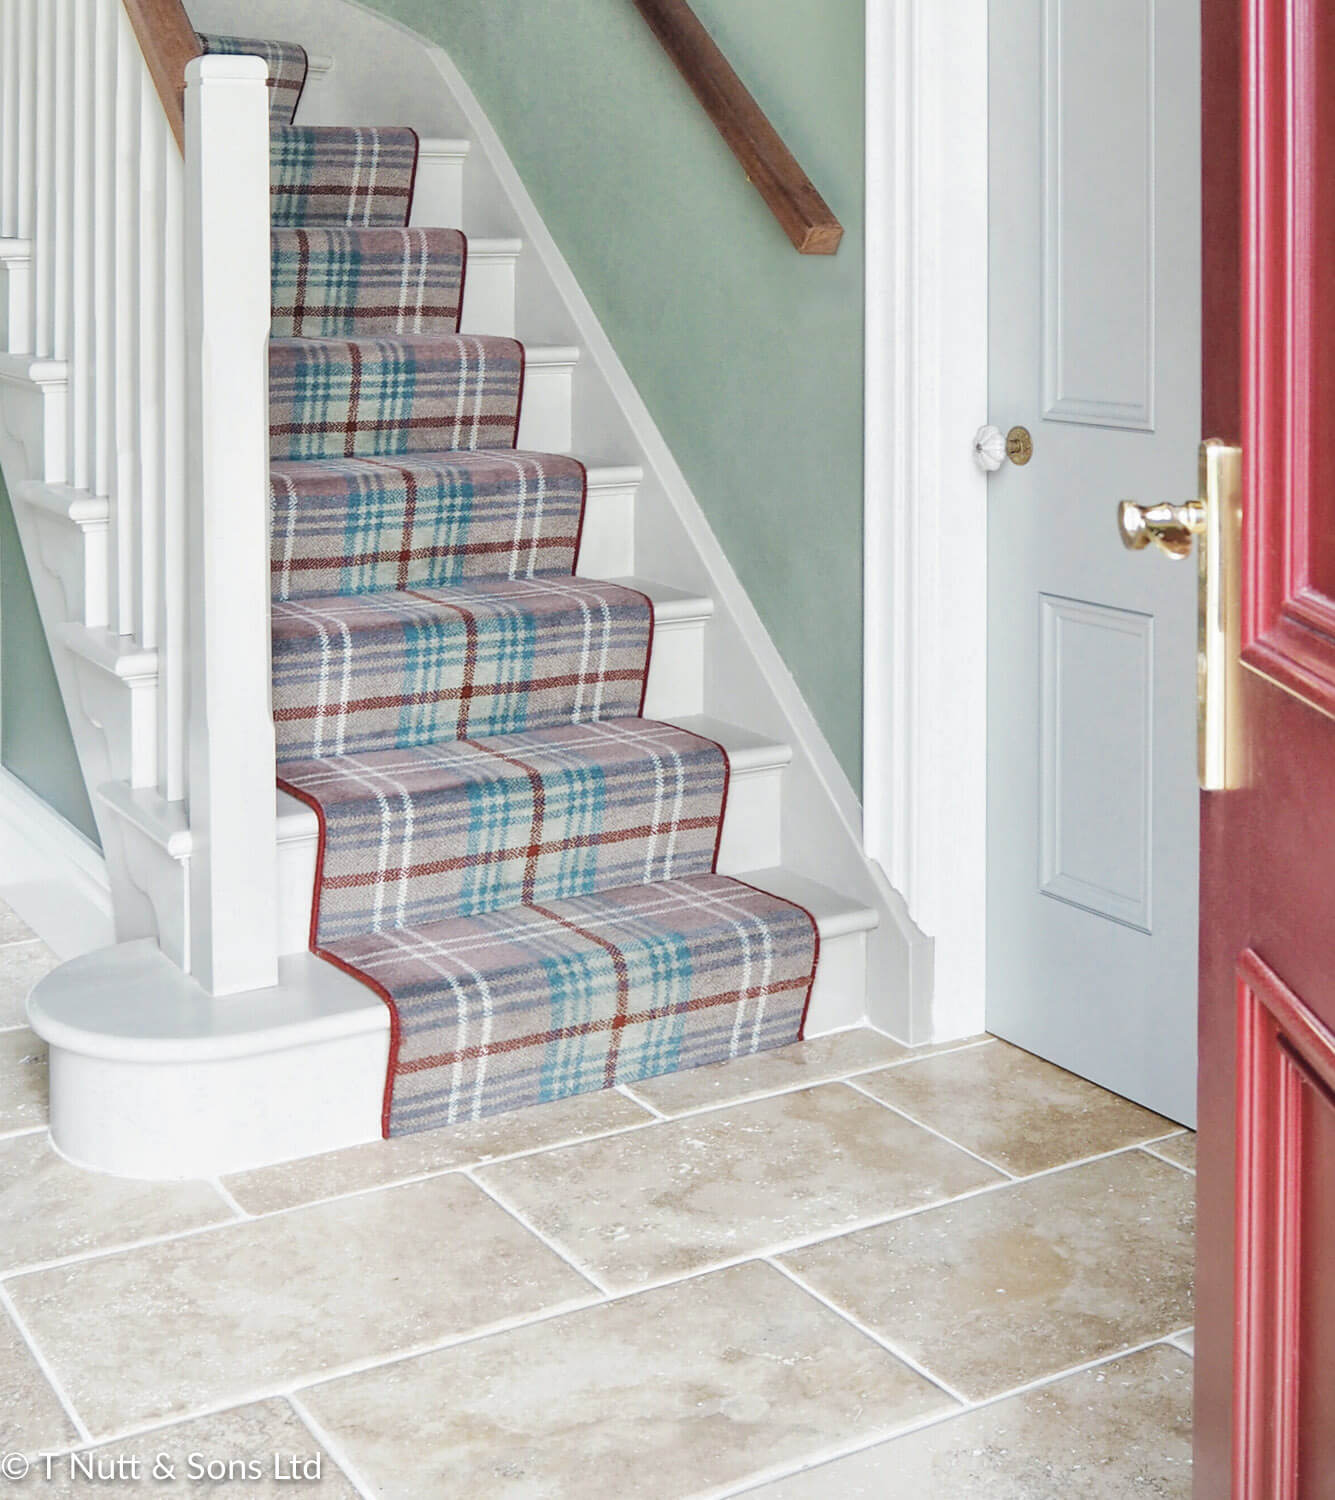 Ulster Glenmoy Beige Chisholm stairs